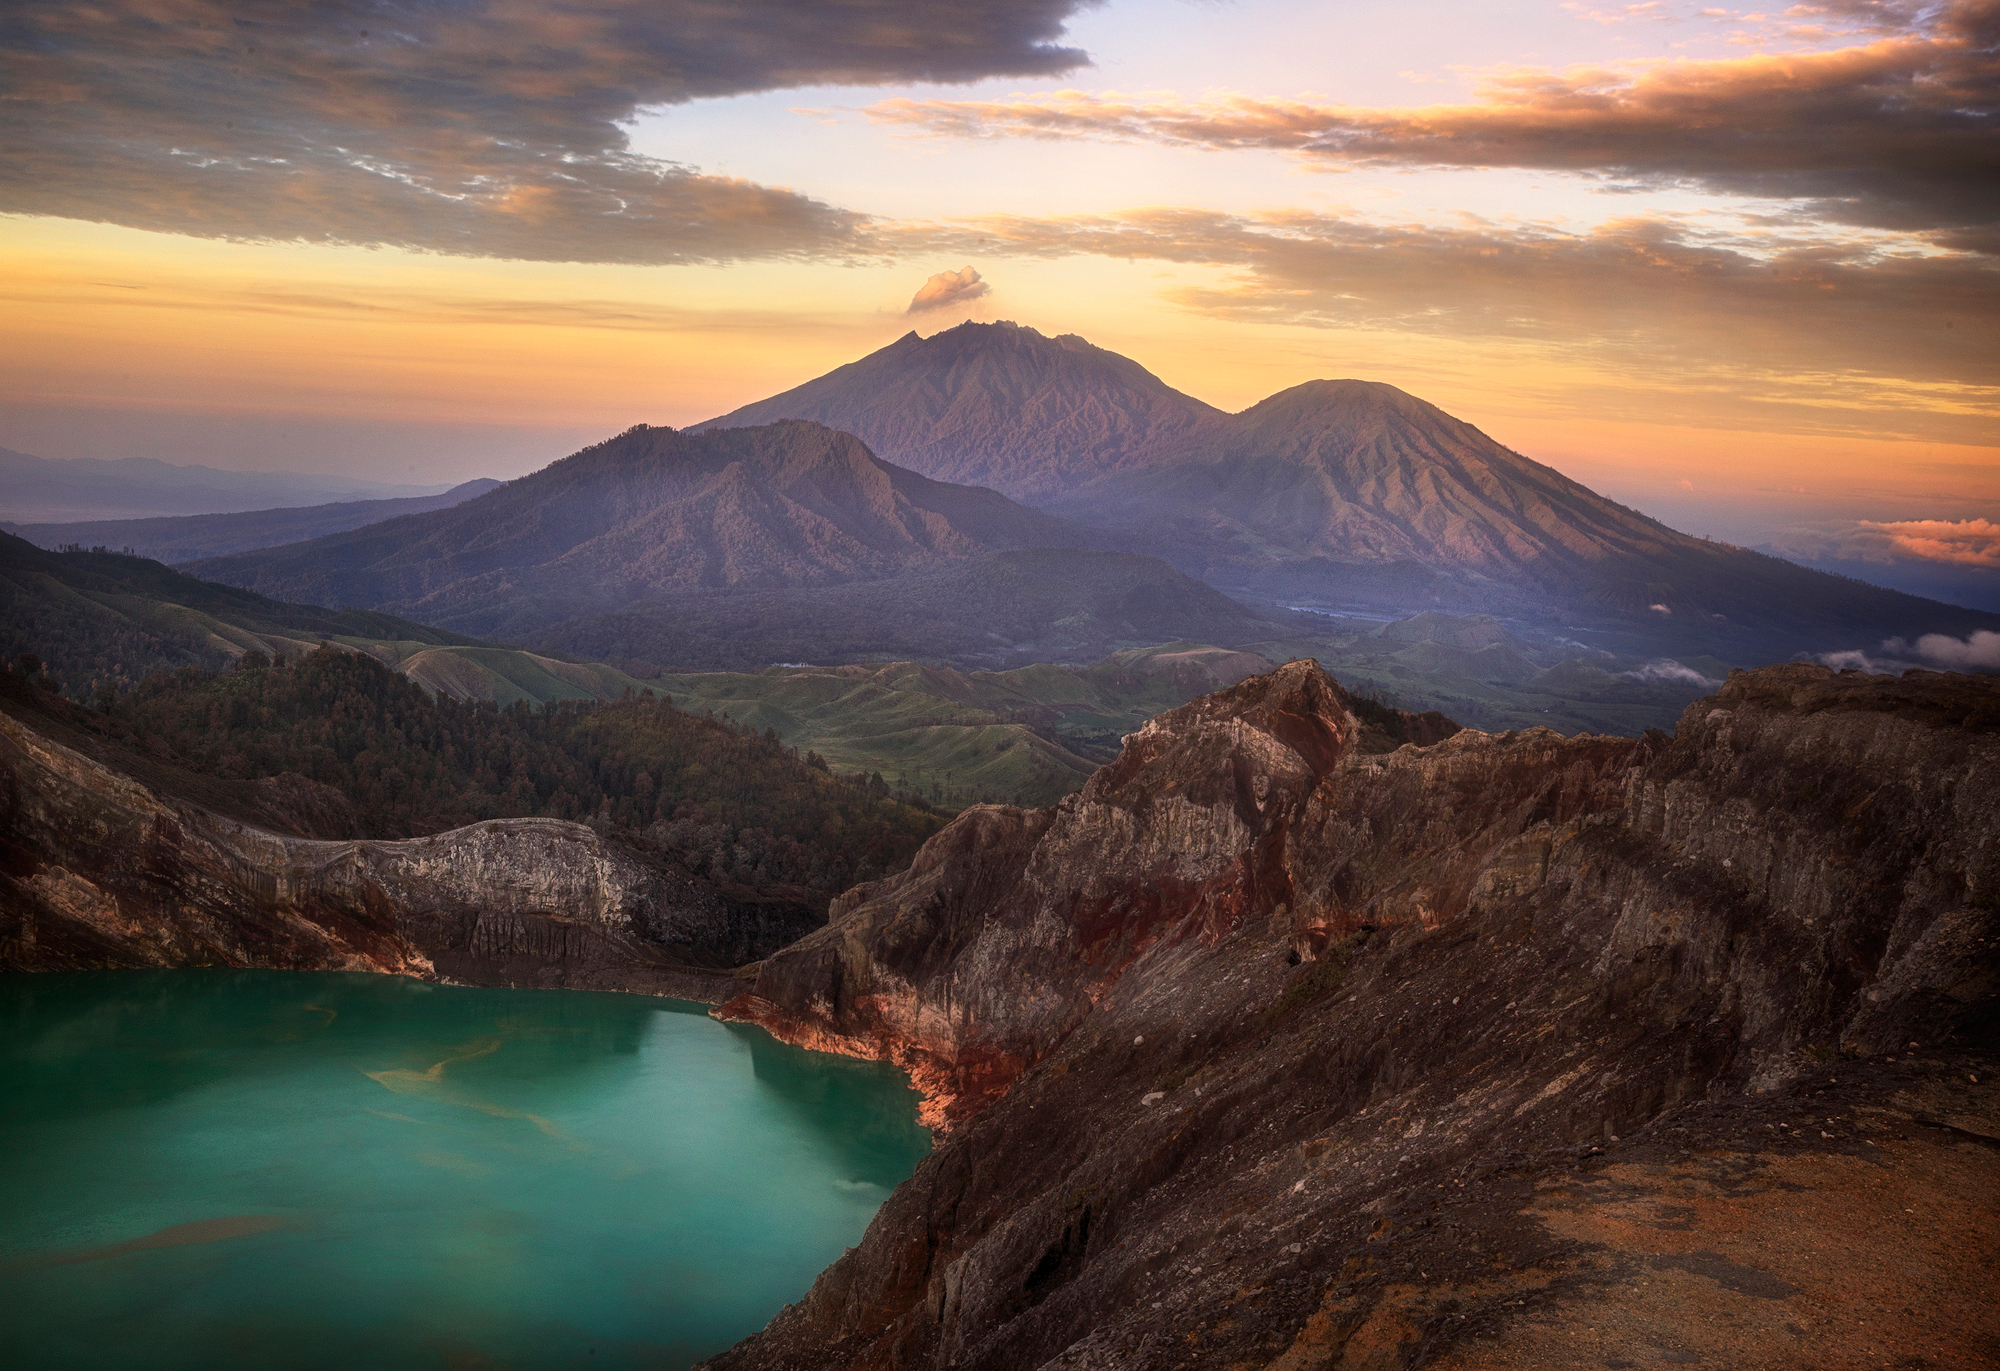 Sunrise at Ijen